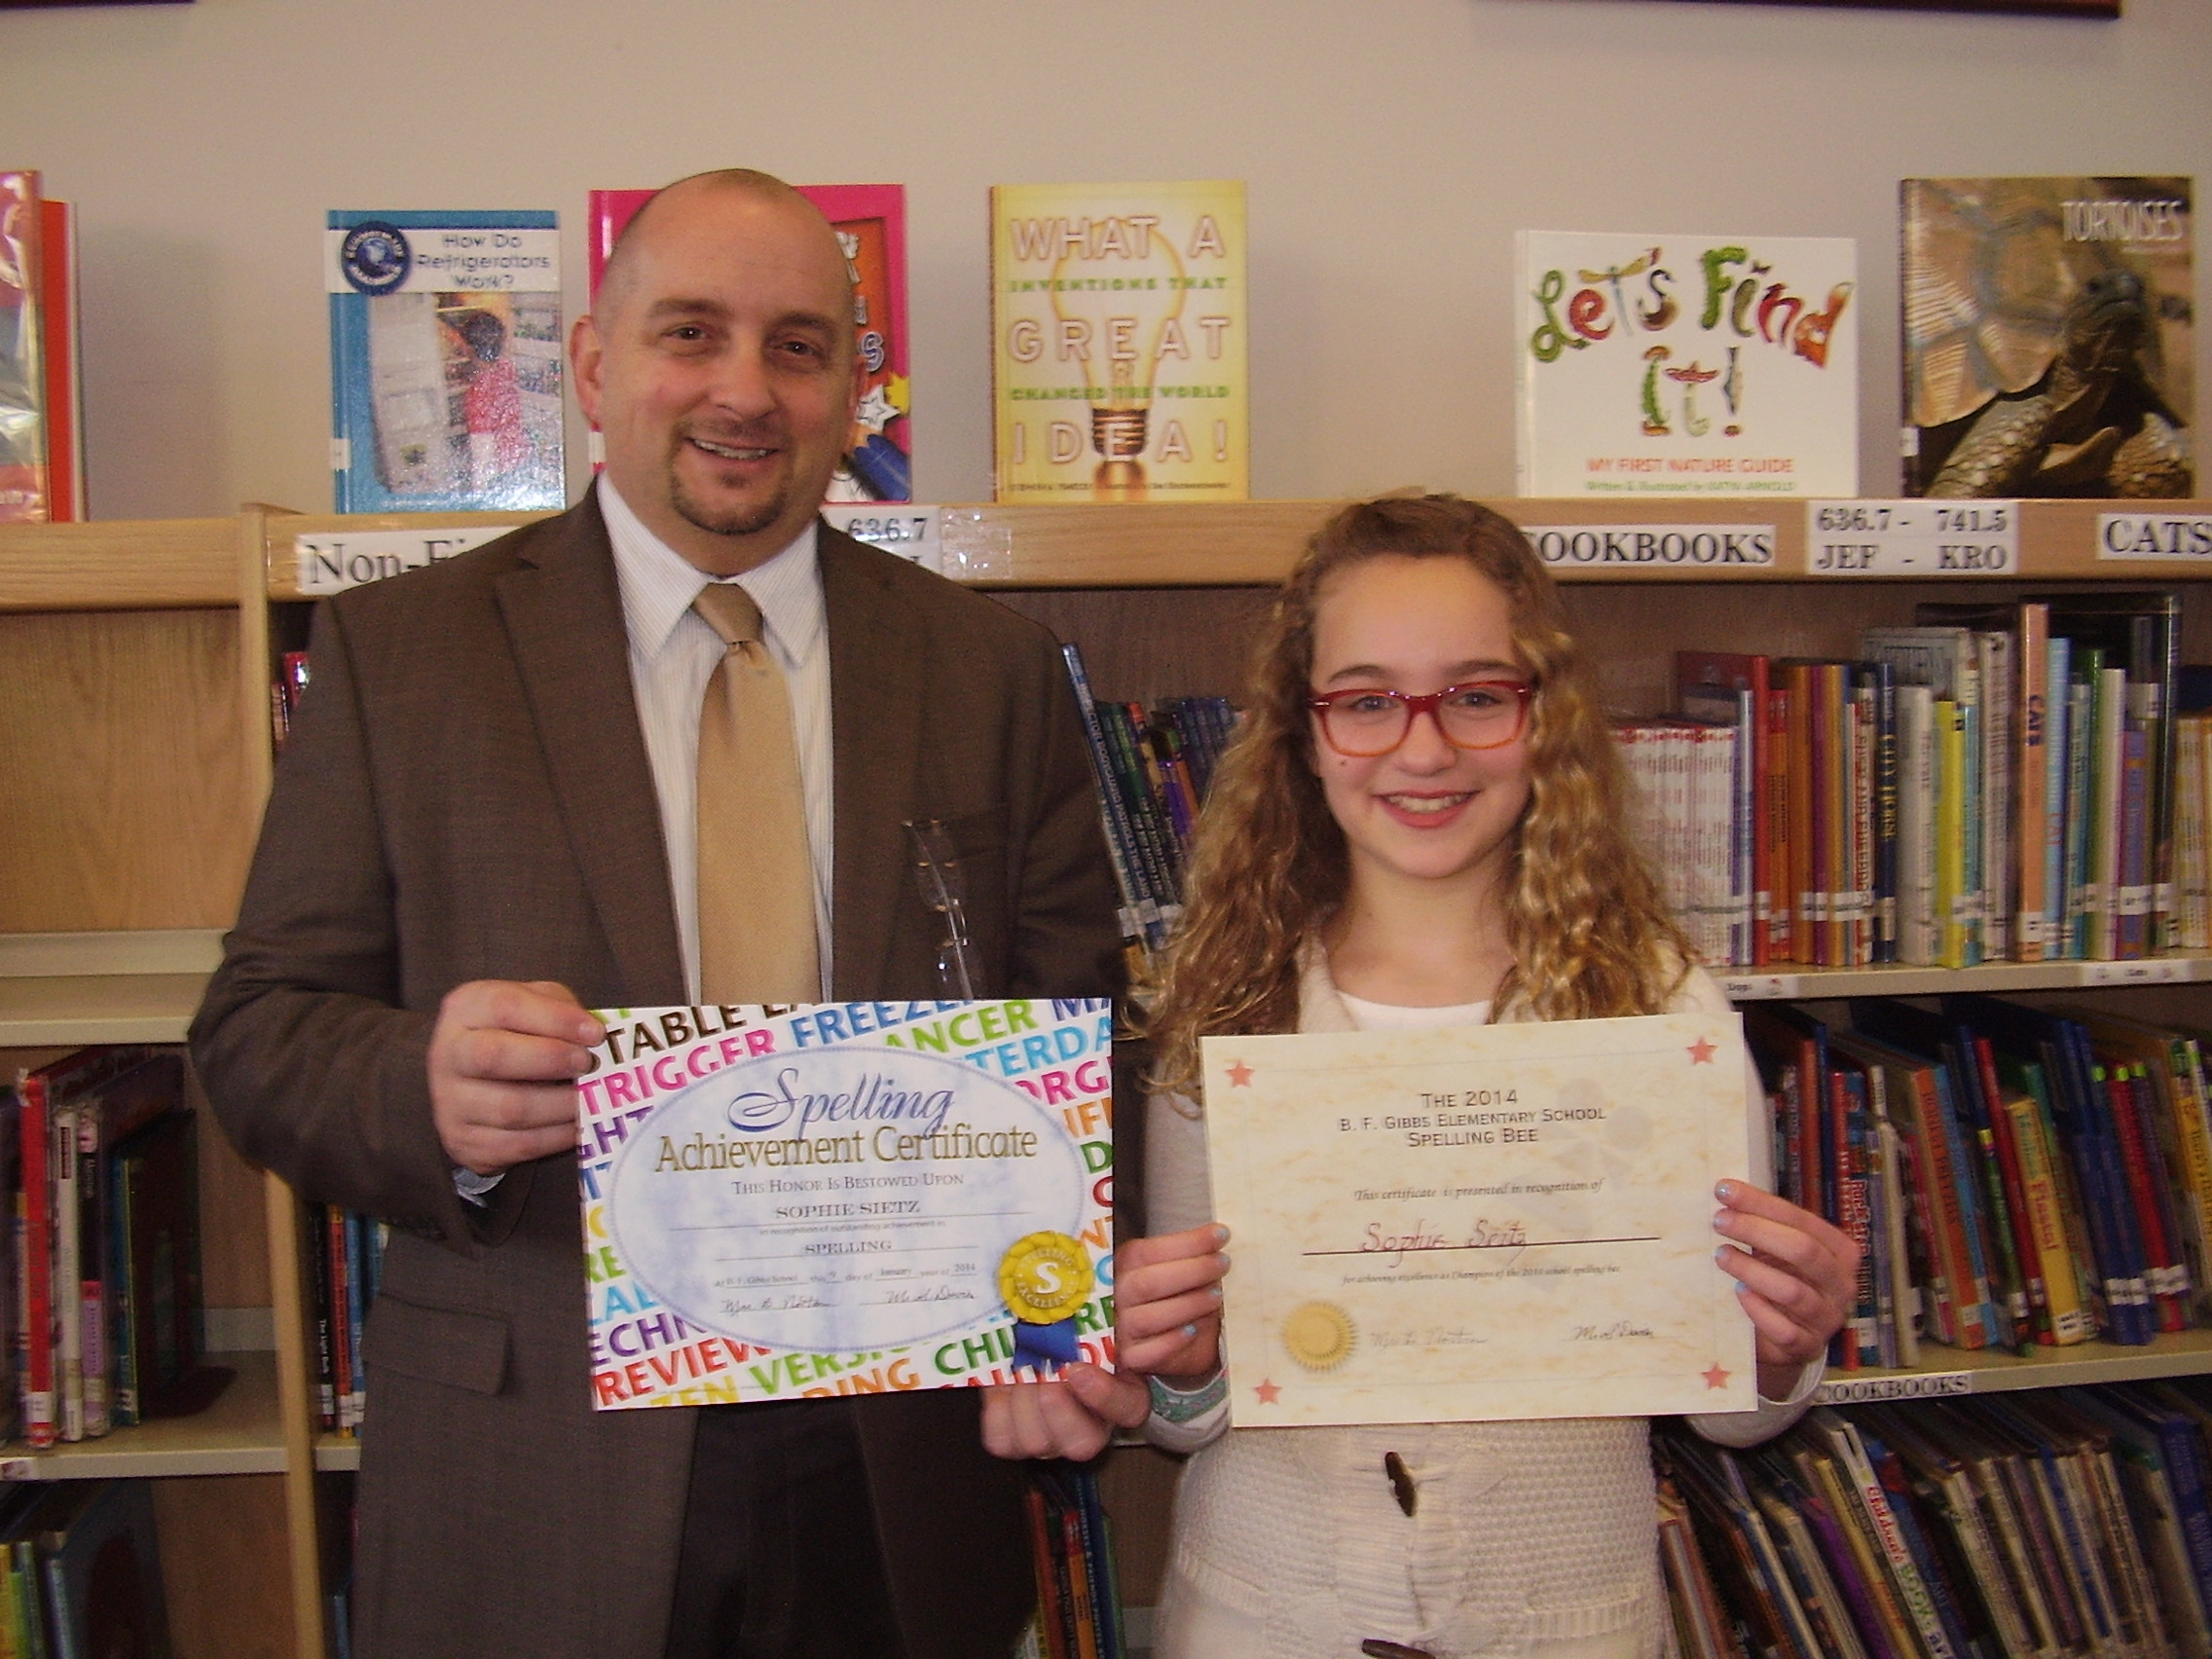 School Spelling Champions Crowned at New Milford Elementary Schools